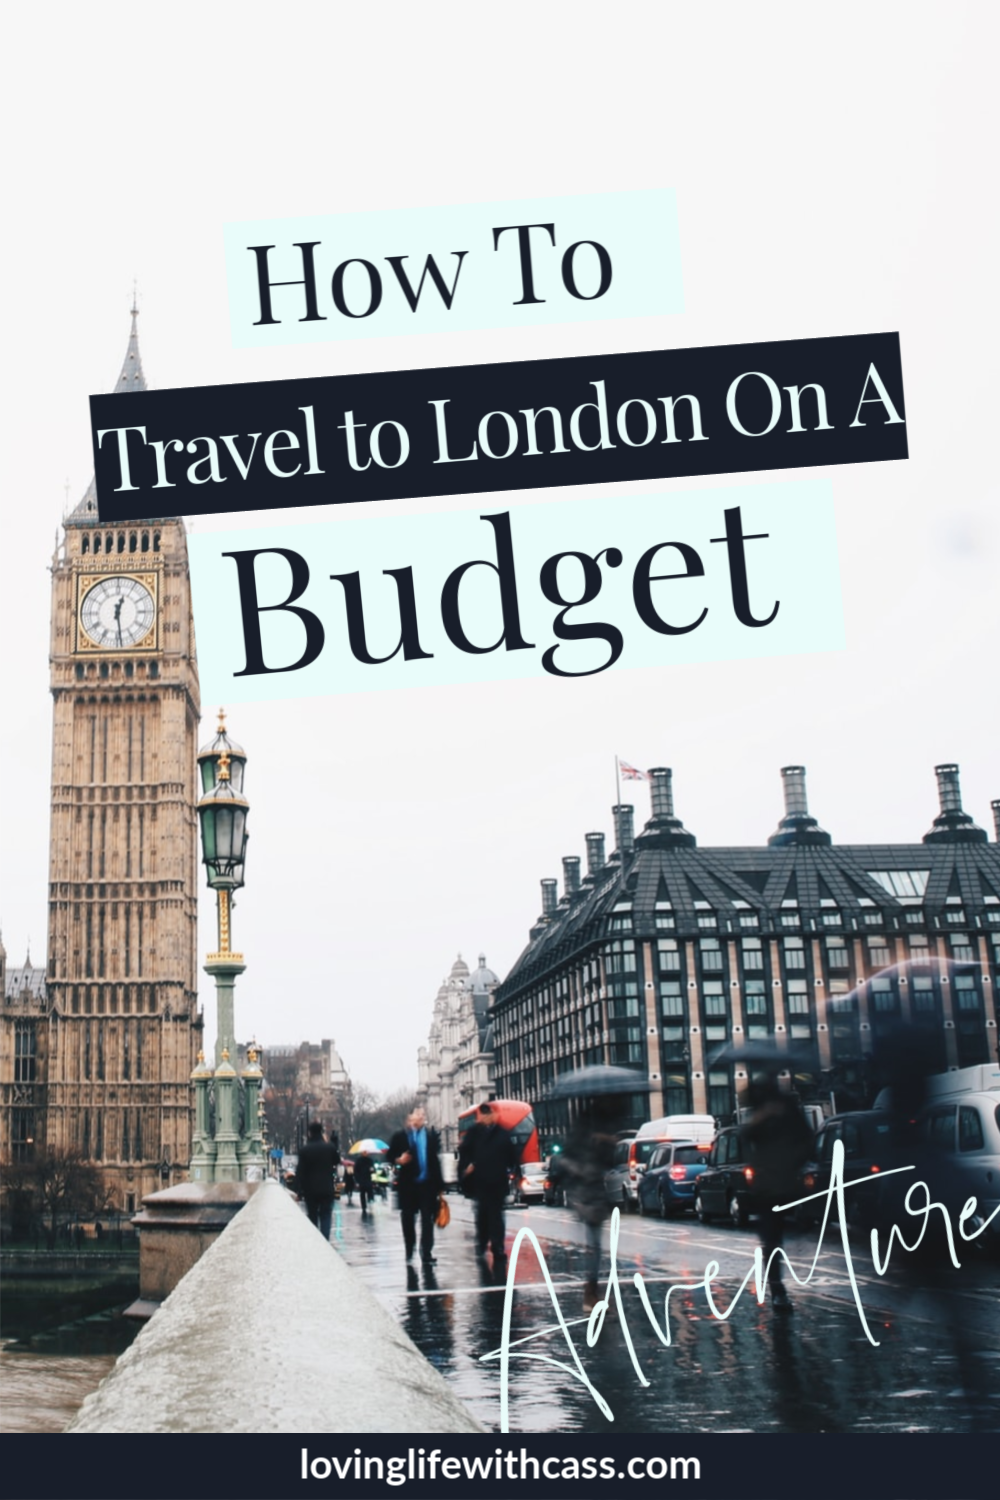 , How To Travel To London On A Budget – lovinglifewithcass, My Travels Blog 2020, My Travels Blog 2020